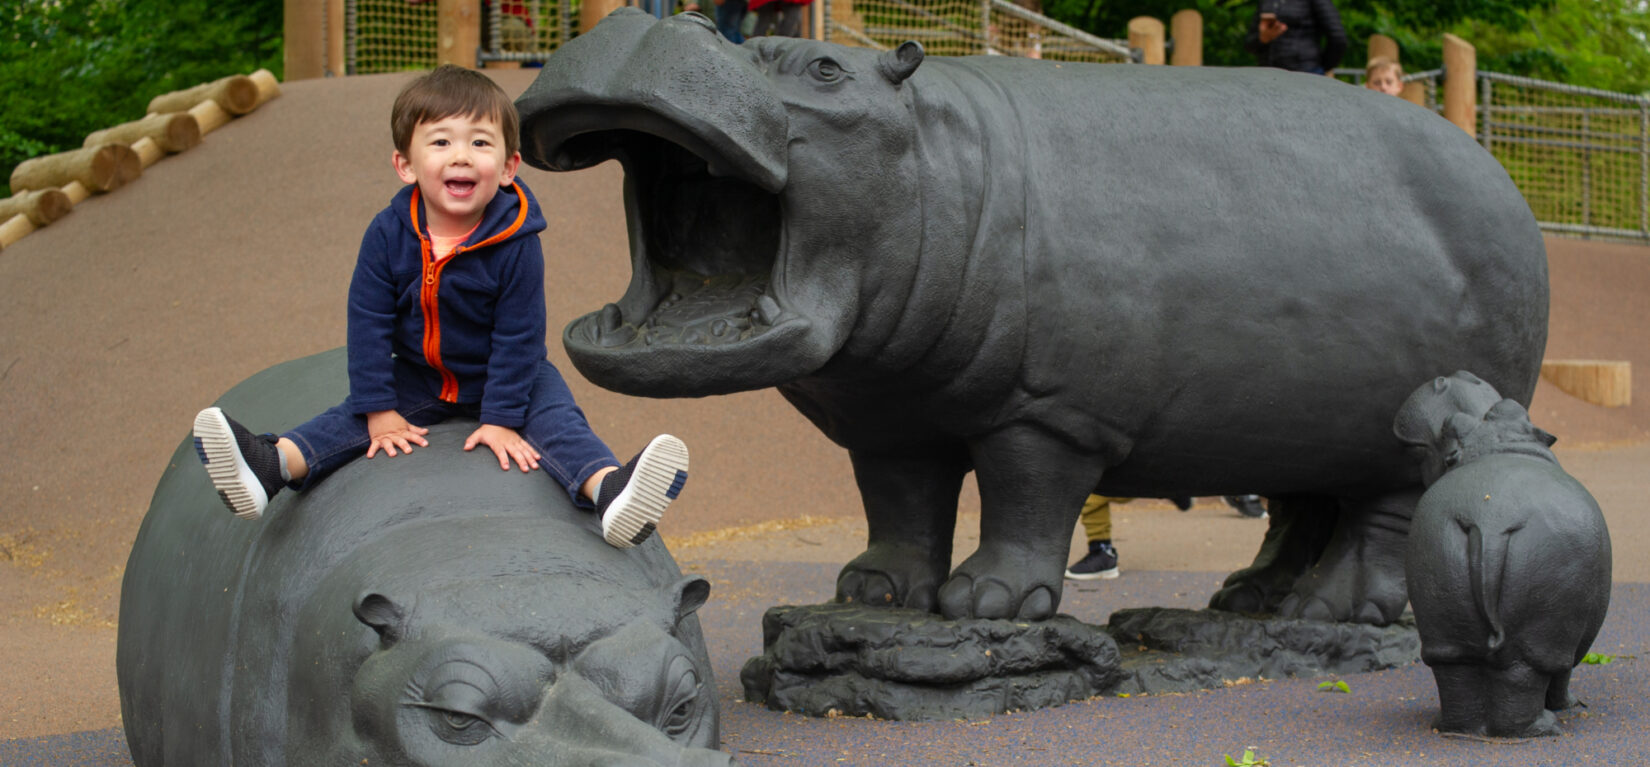 A small child sits atop one of the sculptures of a hippo in the playground.